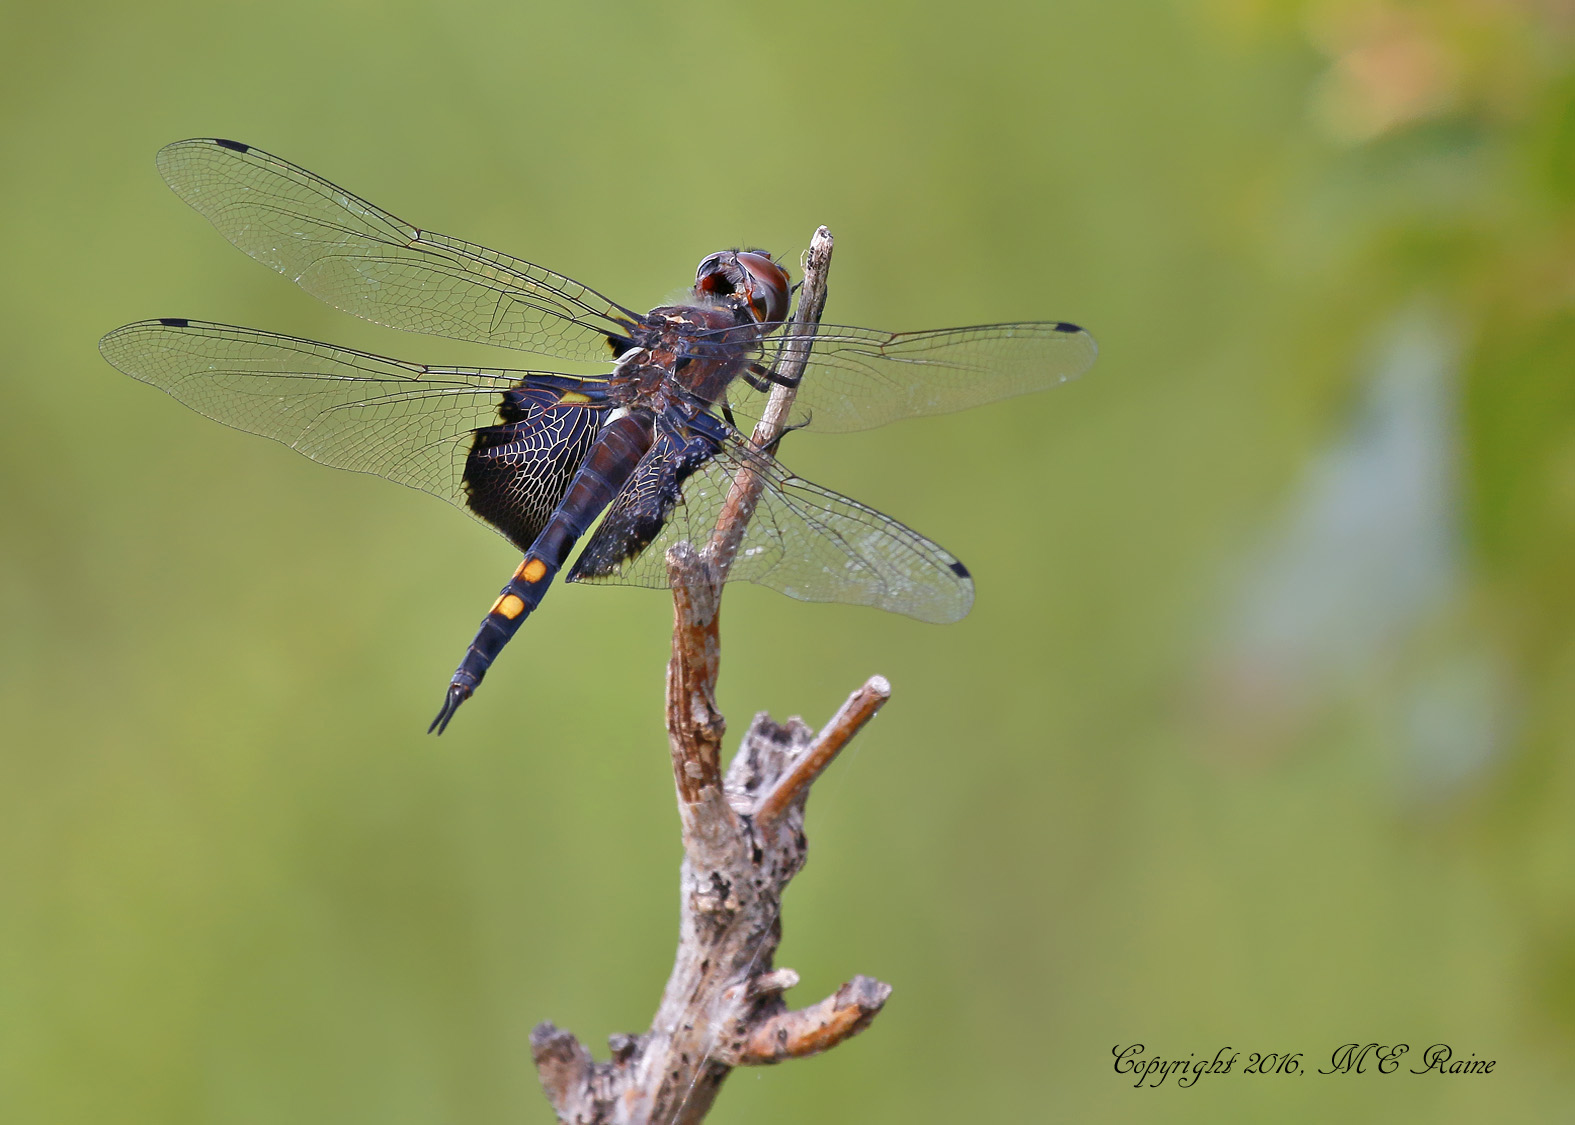 dragonfly-saddlebag-black-001bf-mcm-mdwlnds-nj-090316-ok-flickr